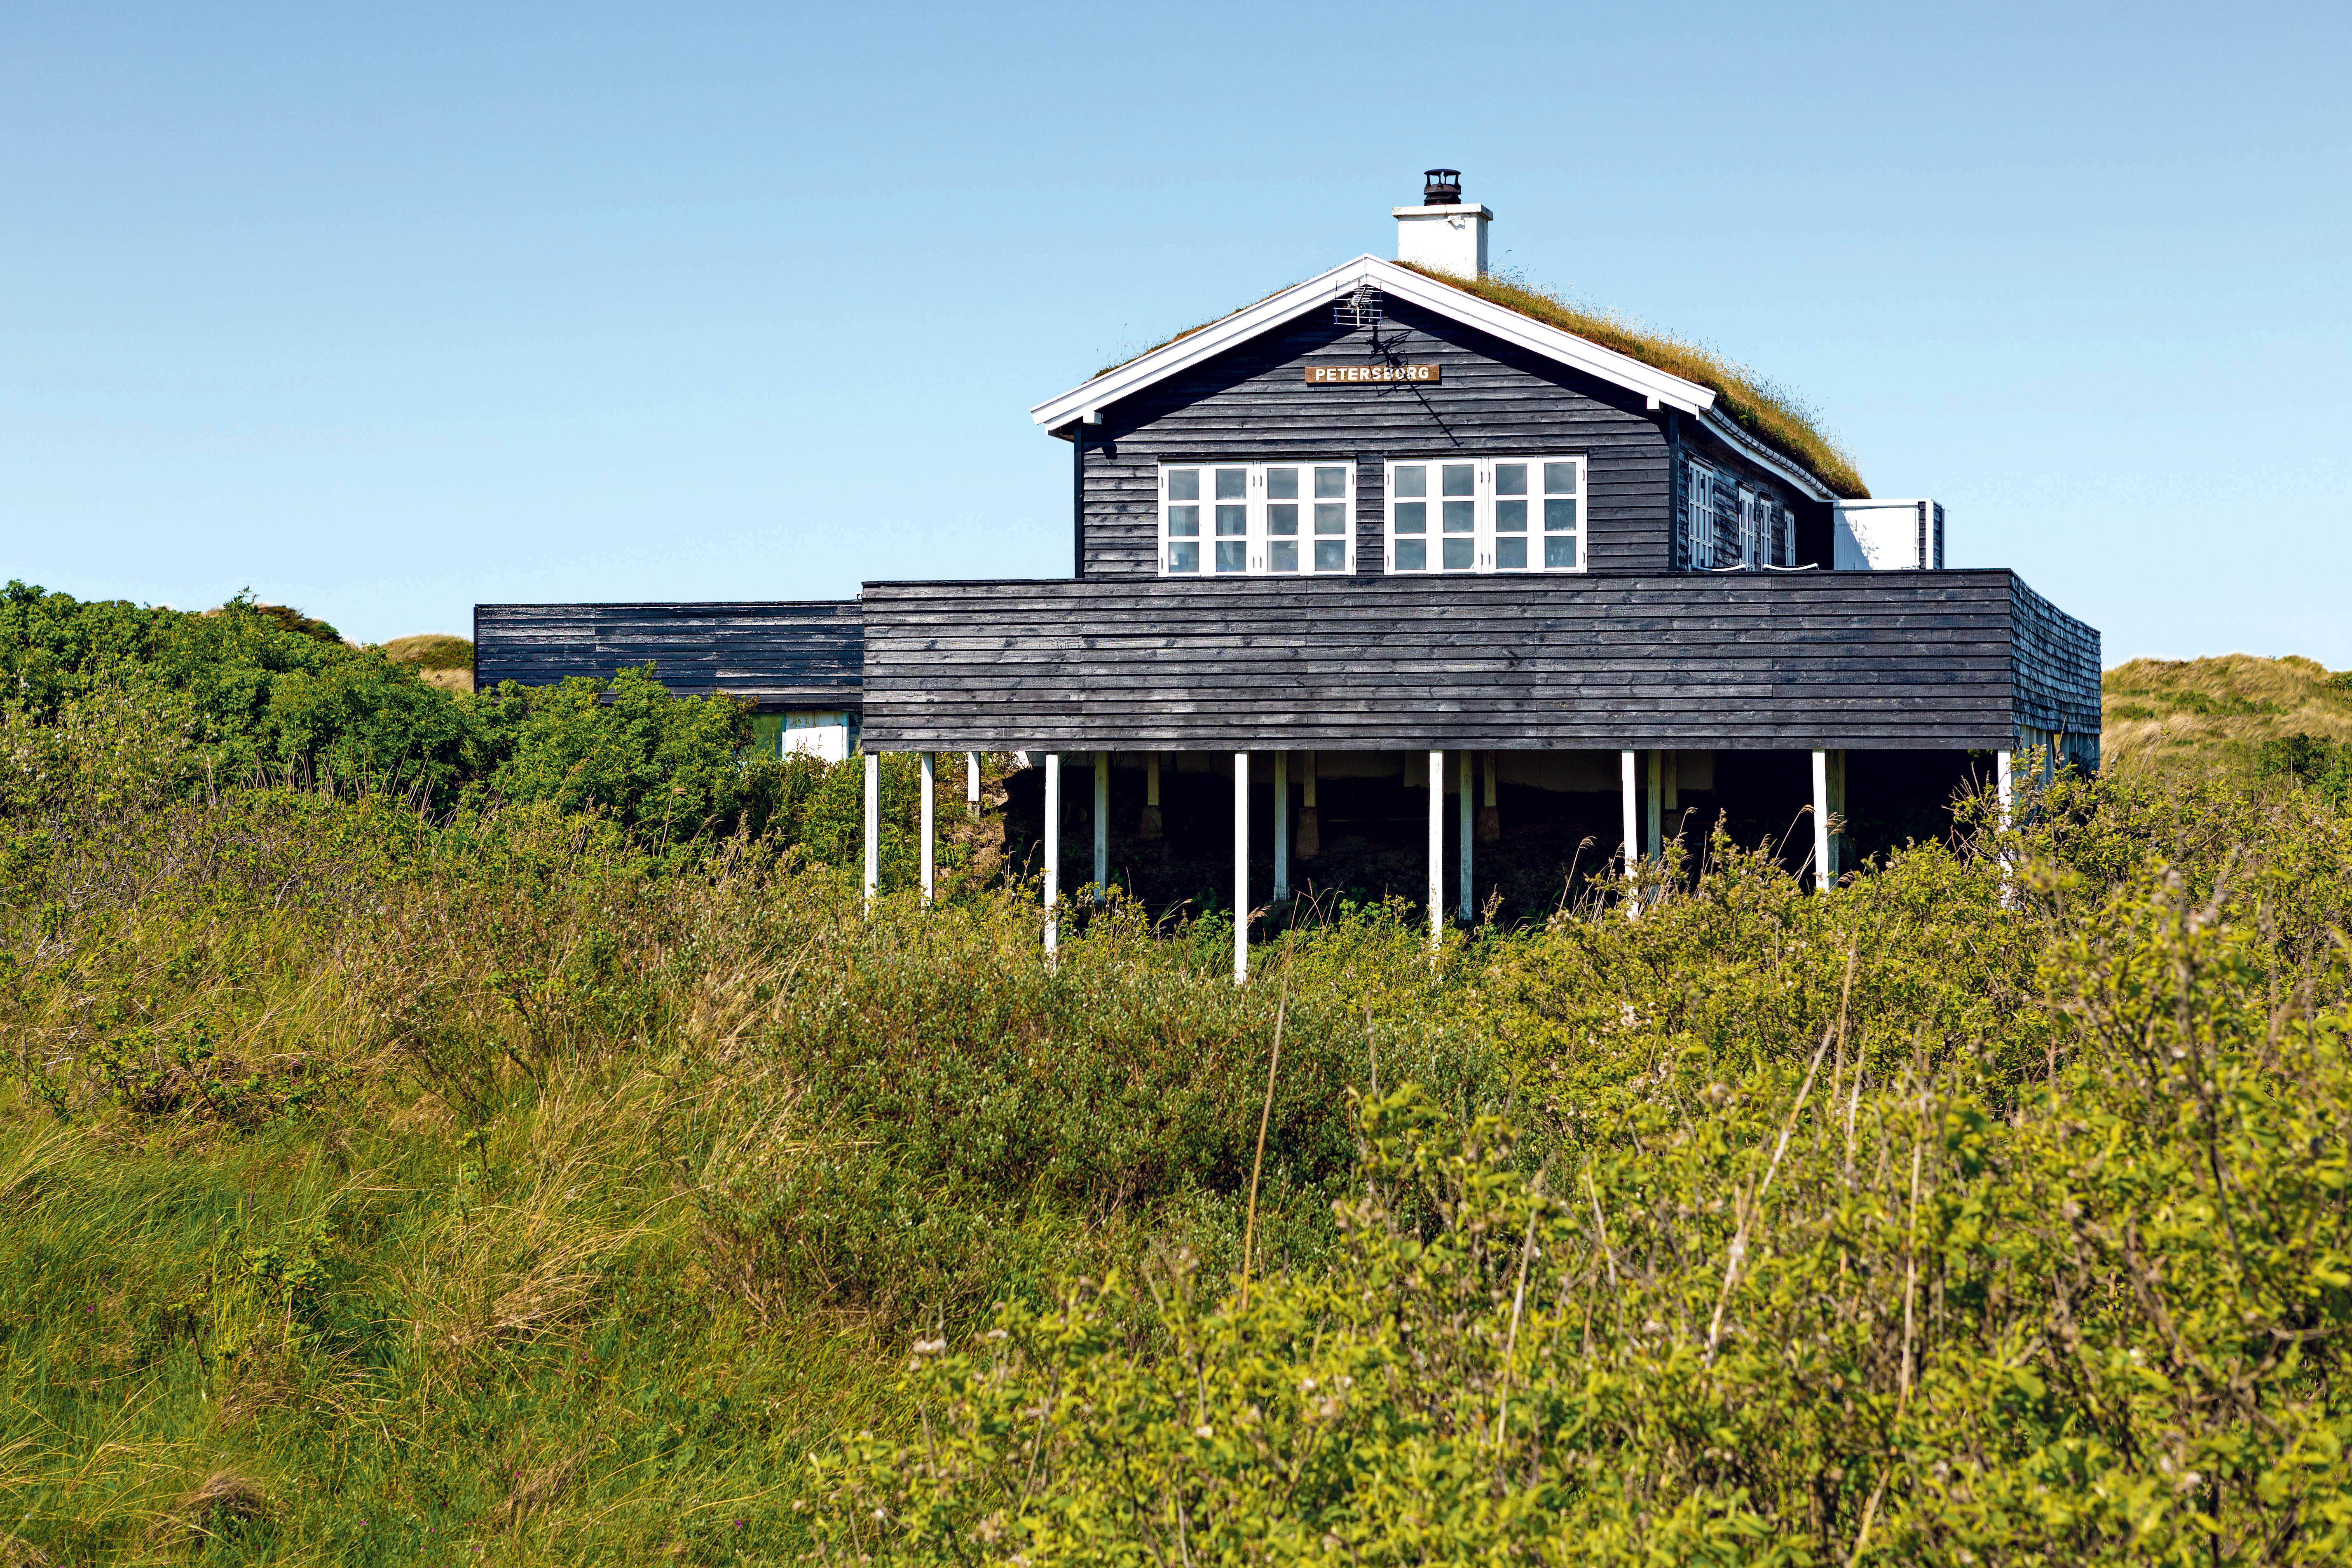 Traditional Danish House In The Sand Dune With Blue Sky And Green Grass